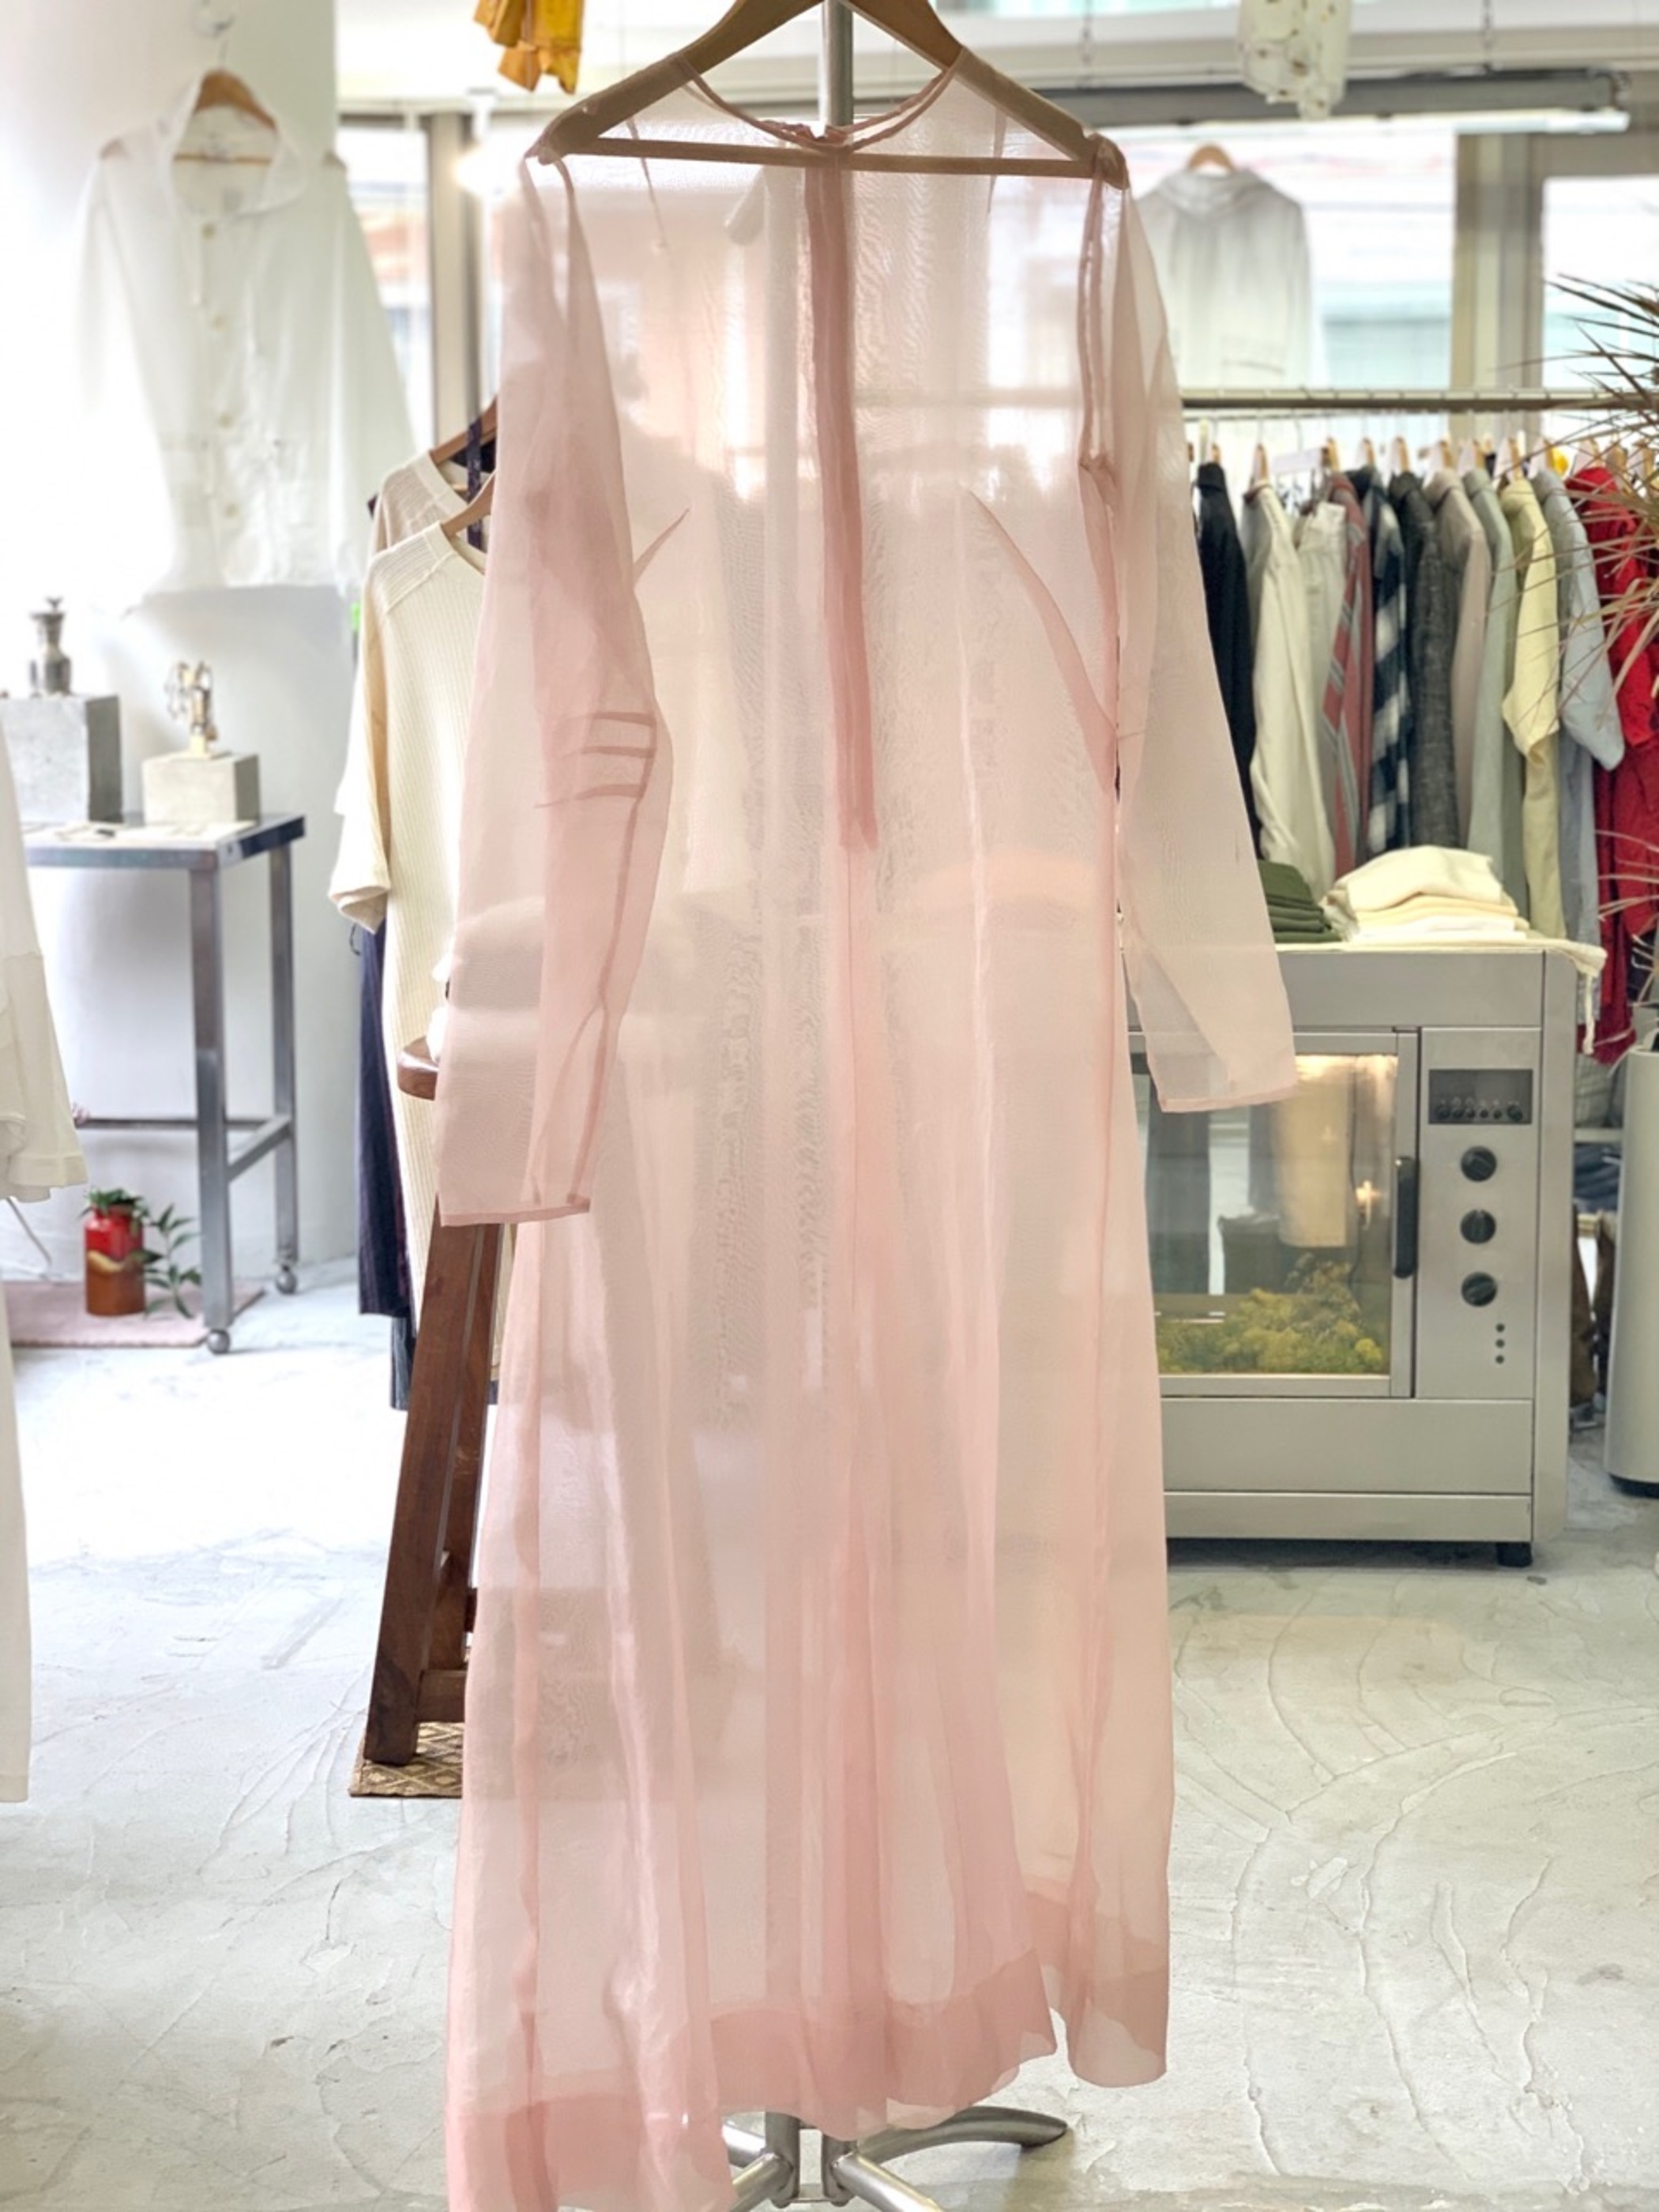 1960's〜 Pink organdie maxi dress